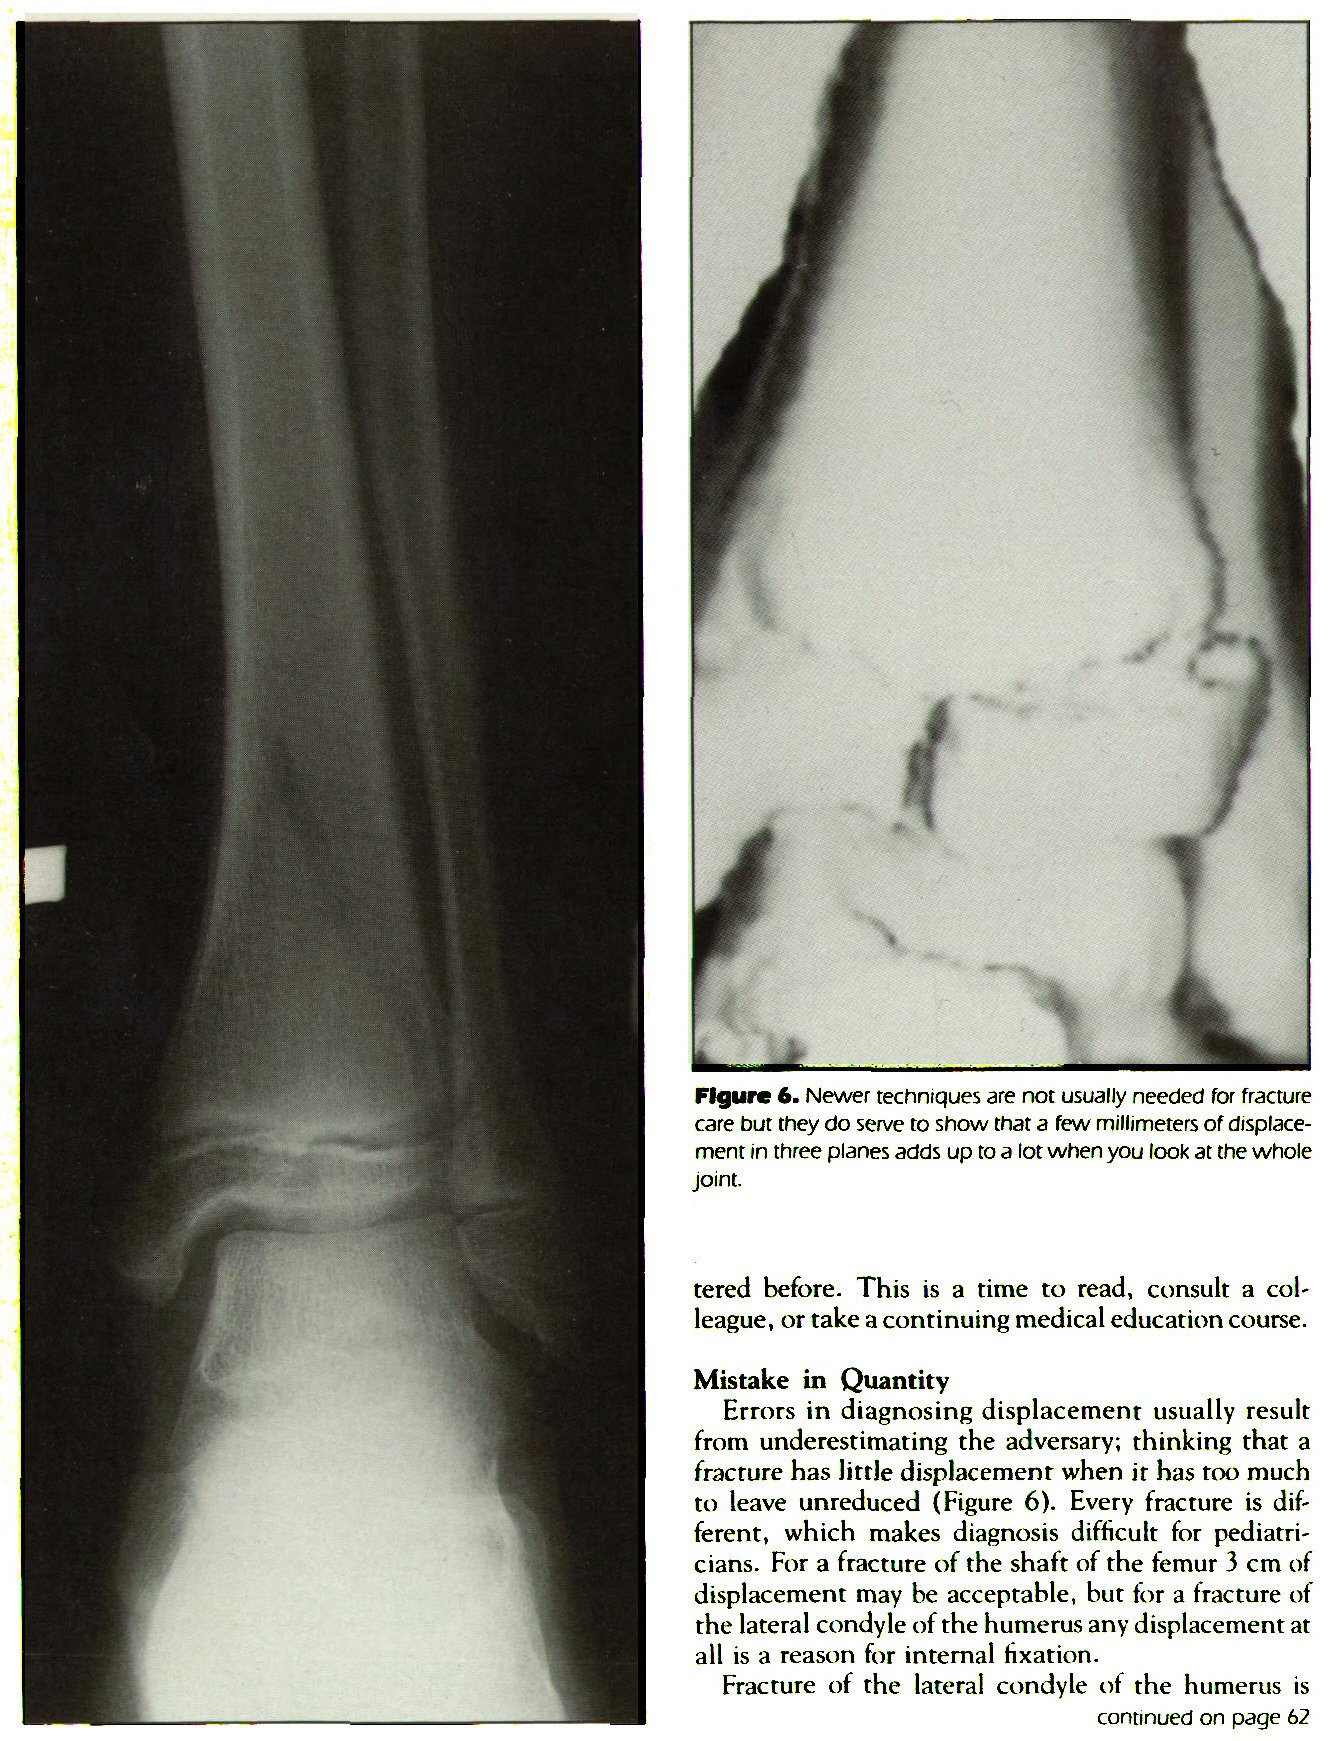 Figure 6. Newer techniques are not usually needed for fracture care but they do serve to show that a few millimeters of displacement in three planes adds up to a lot when you look at the whole joint.